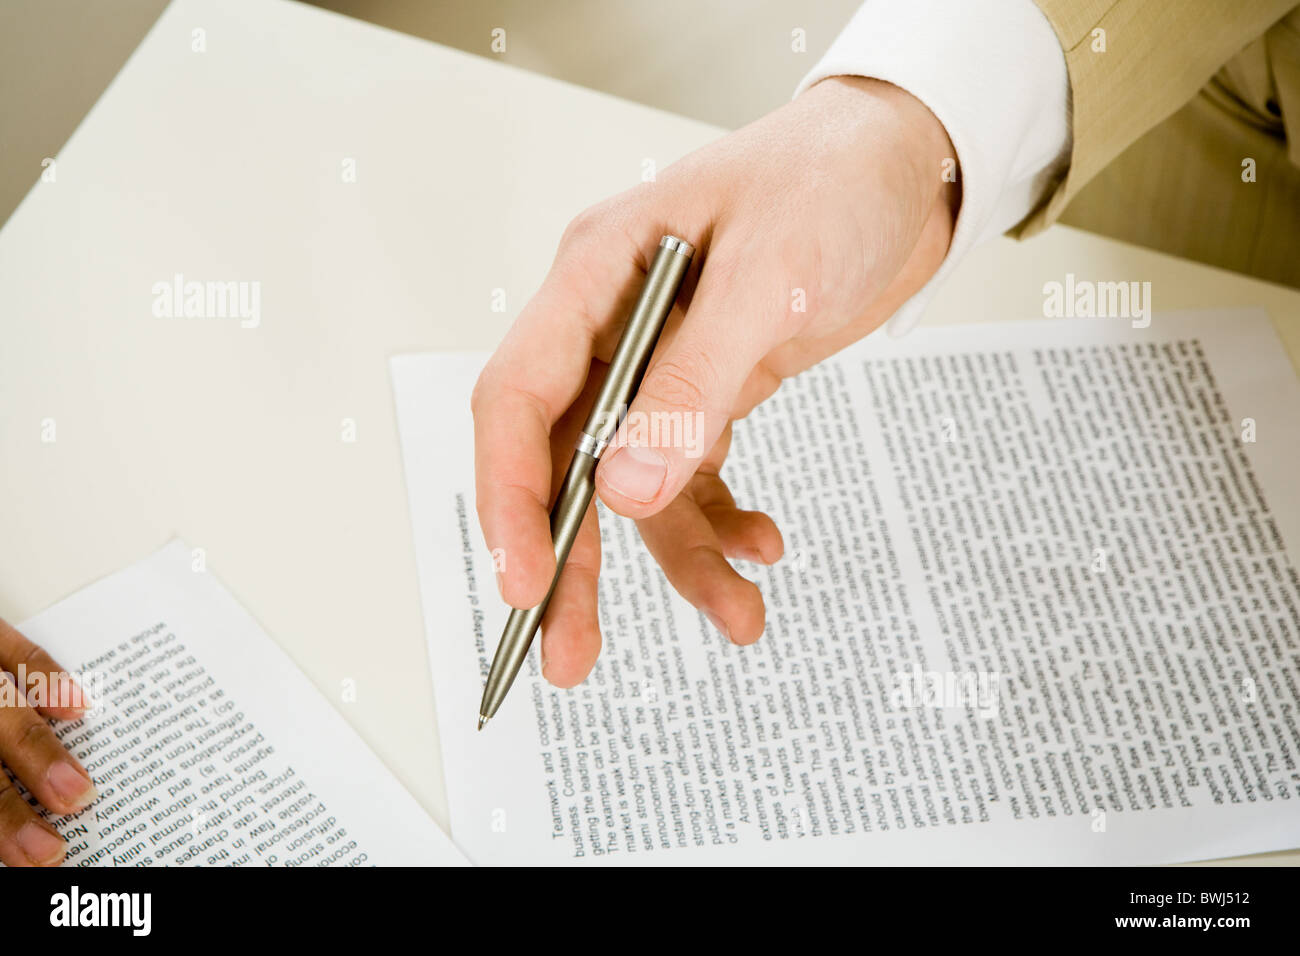 Image of male hand with ballpoint over paper during discussion of plans - Stock Image